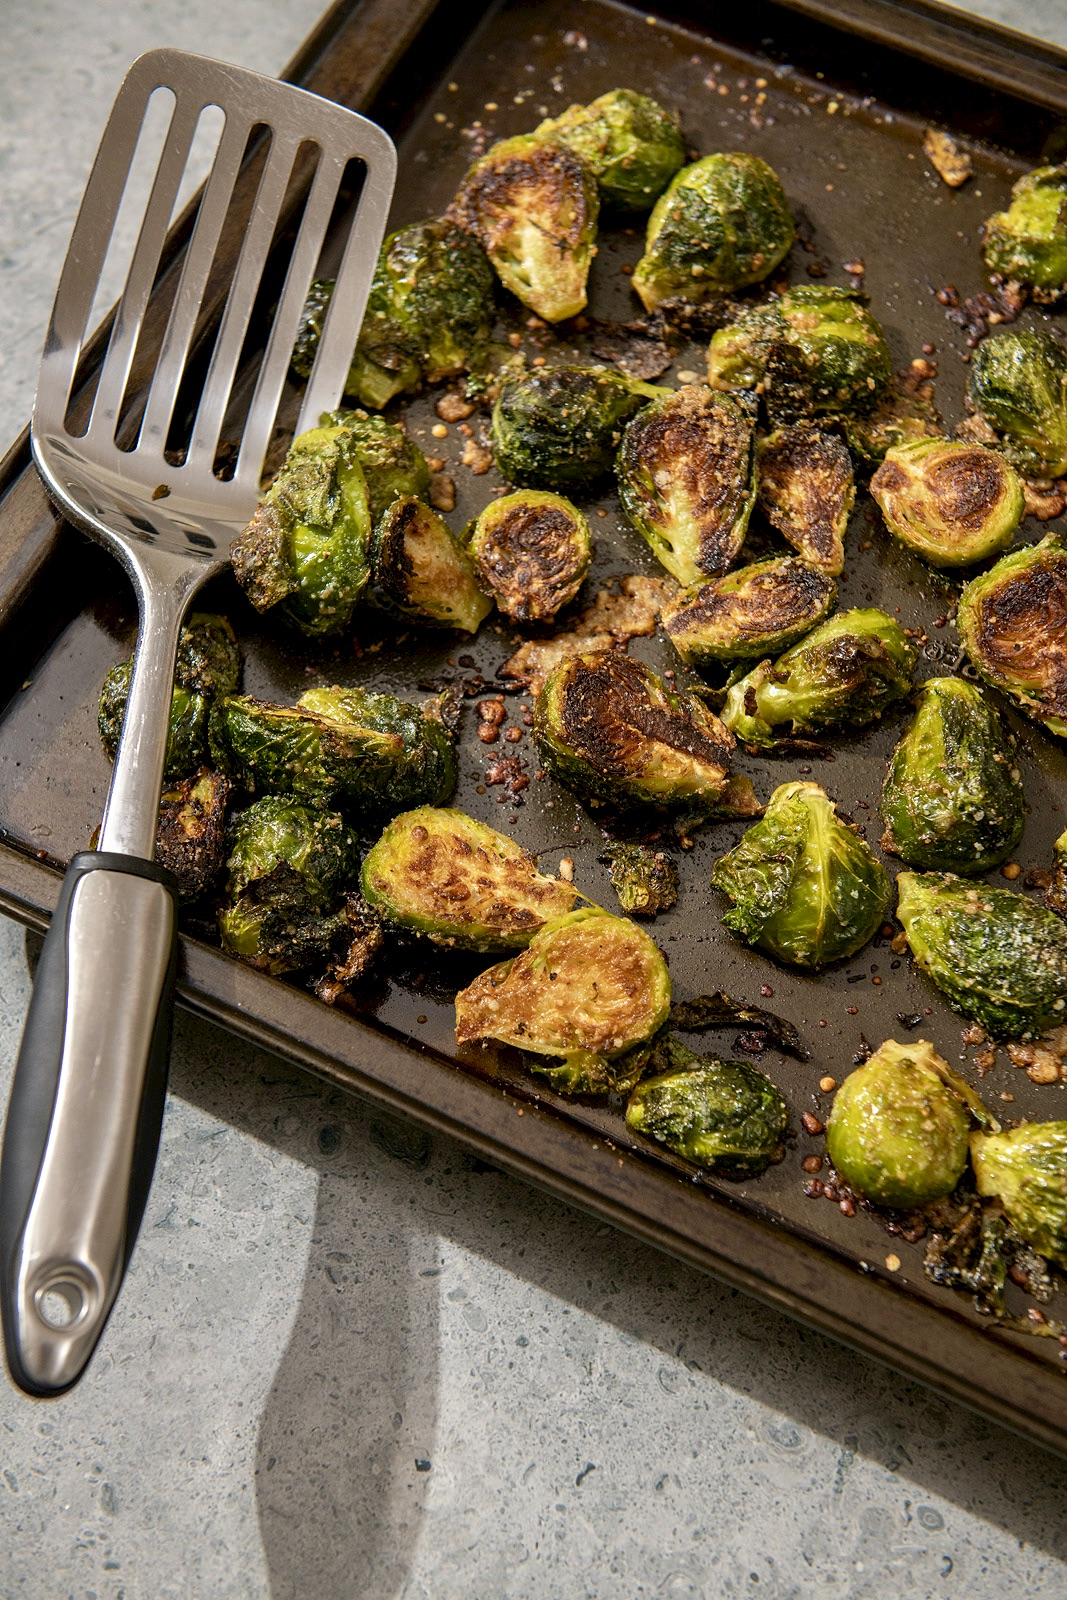 If you're not careful, these magical bites will disappear from the baking sheet before they make it to the table! Who knew we had to guard our vegetables?